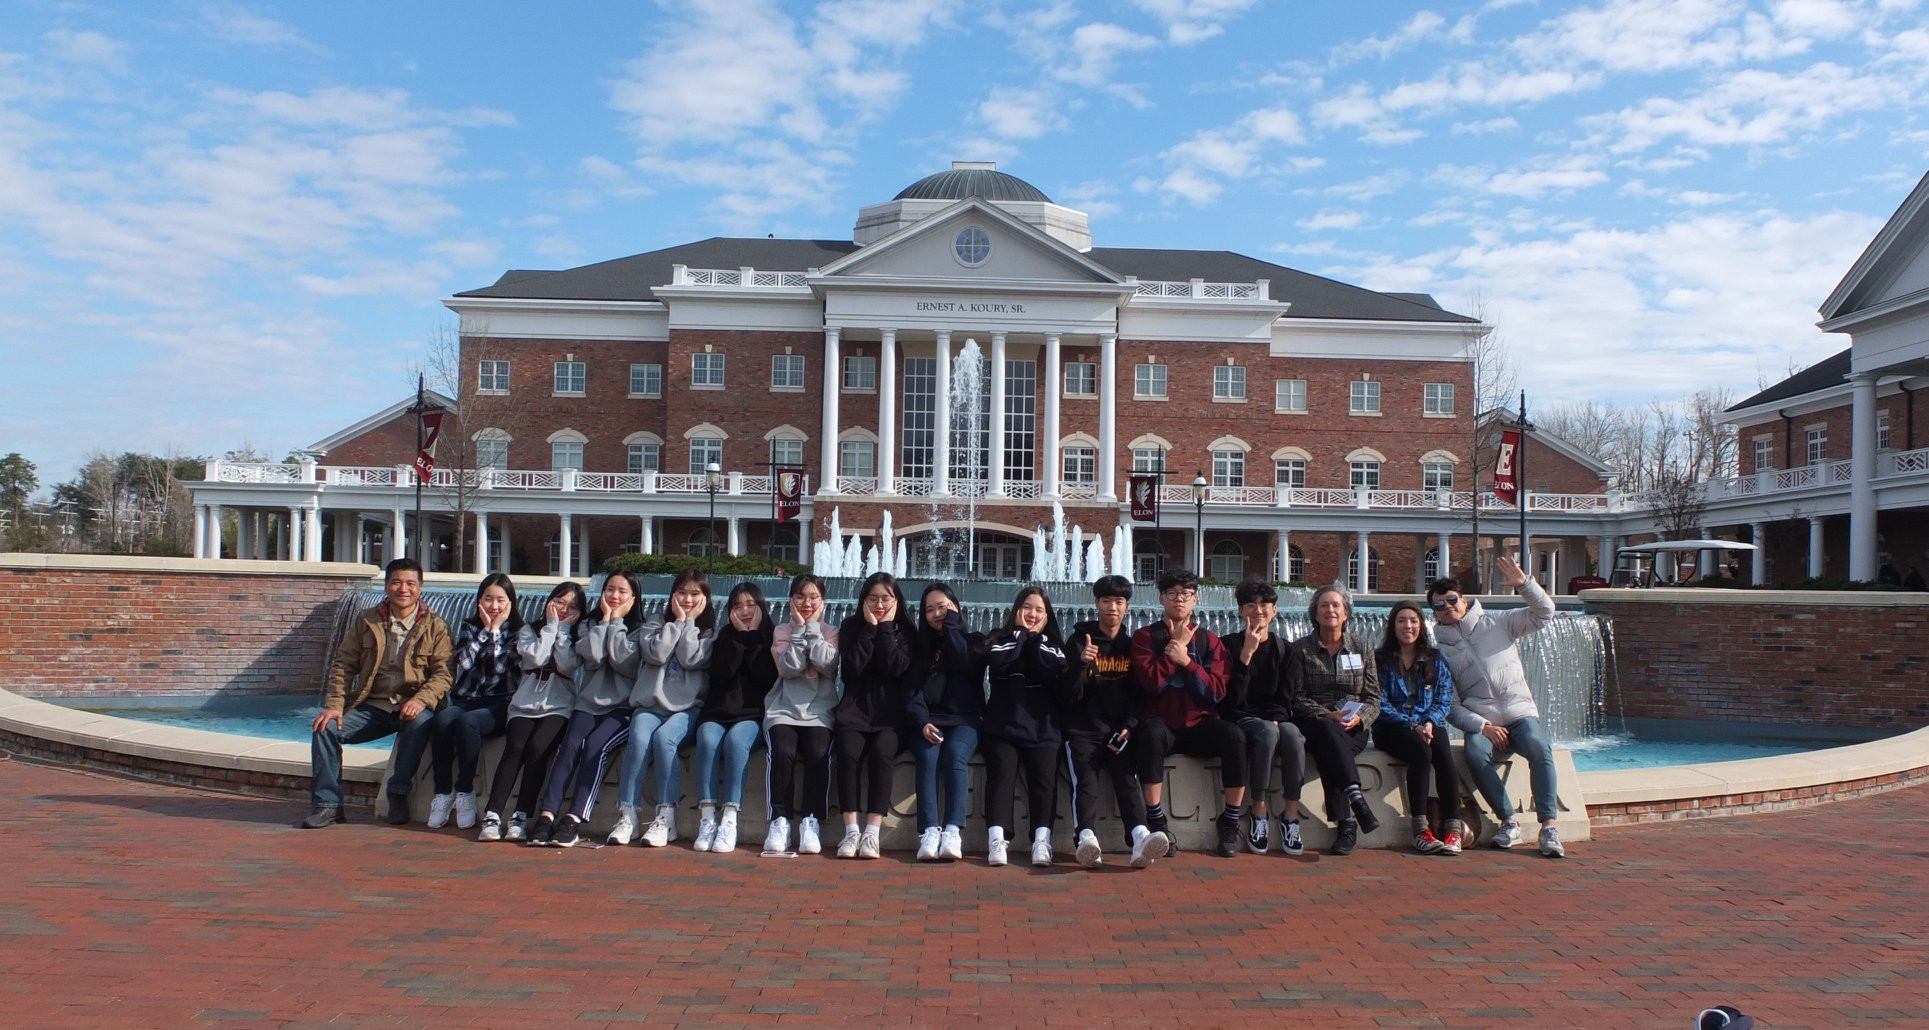 Gwacheon Students at Elon